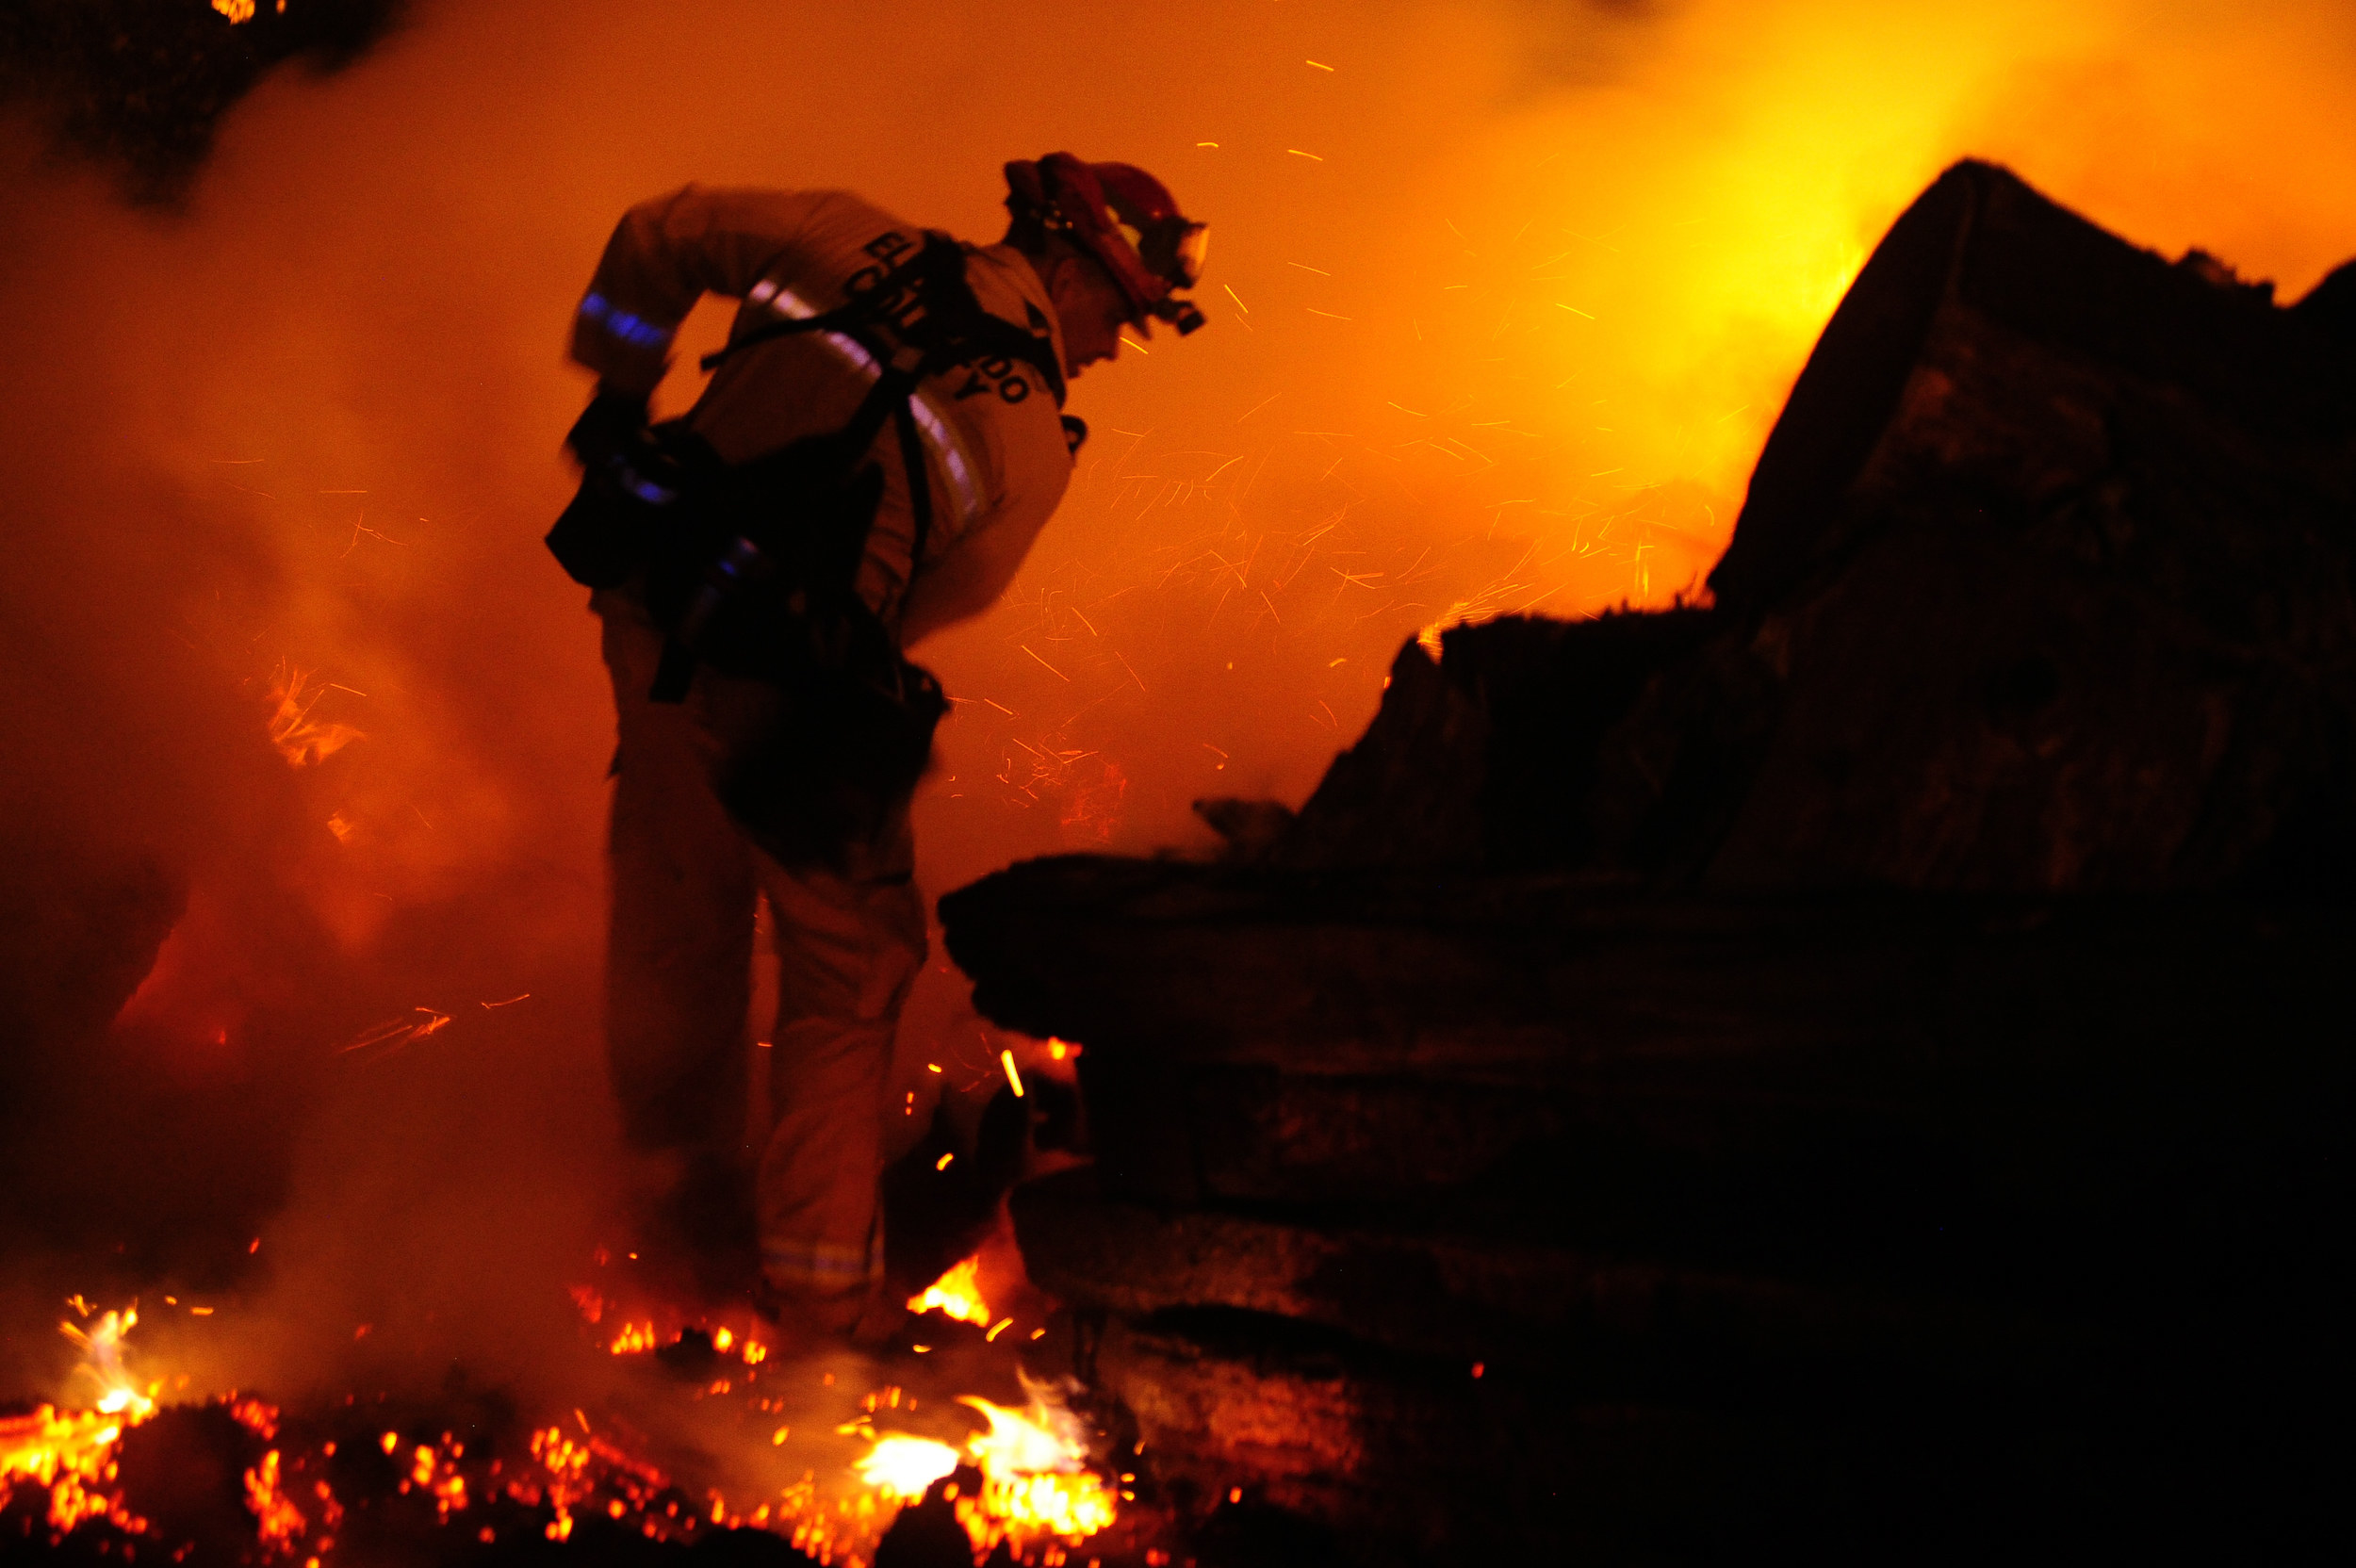 A firefighter stands on burning embers at night